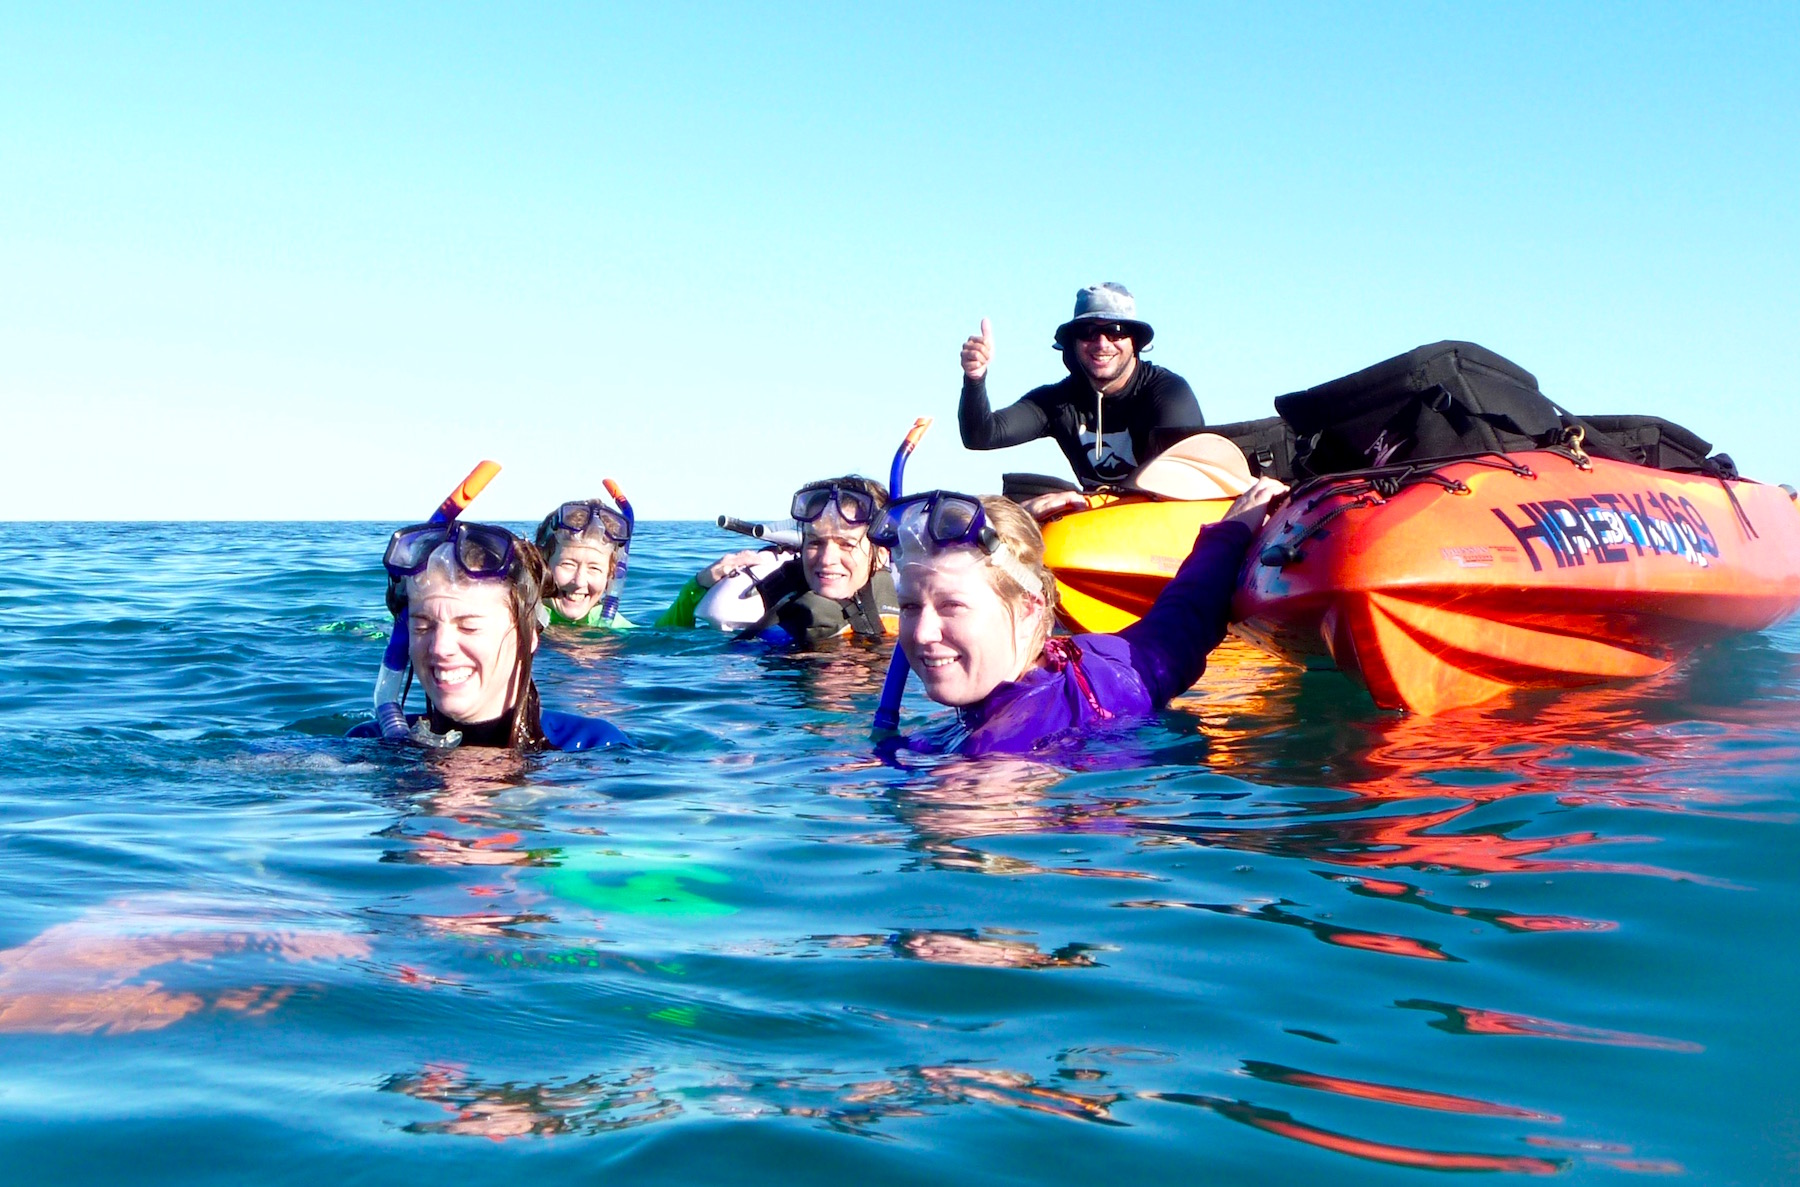 Hire, Kayak Hire, Snorkel Hire, SUP Hire, Camping Gear hire, Snorkel gear hire, kayak rental, rent kayak, hire kayak, exmouth, ningaloo reef, western australia, exmouth adventure co